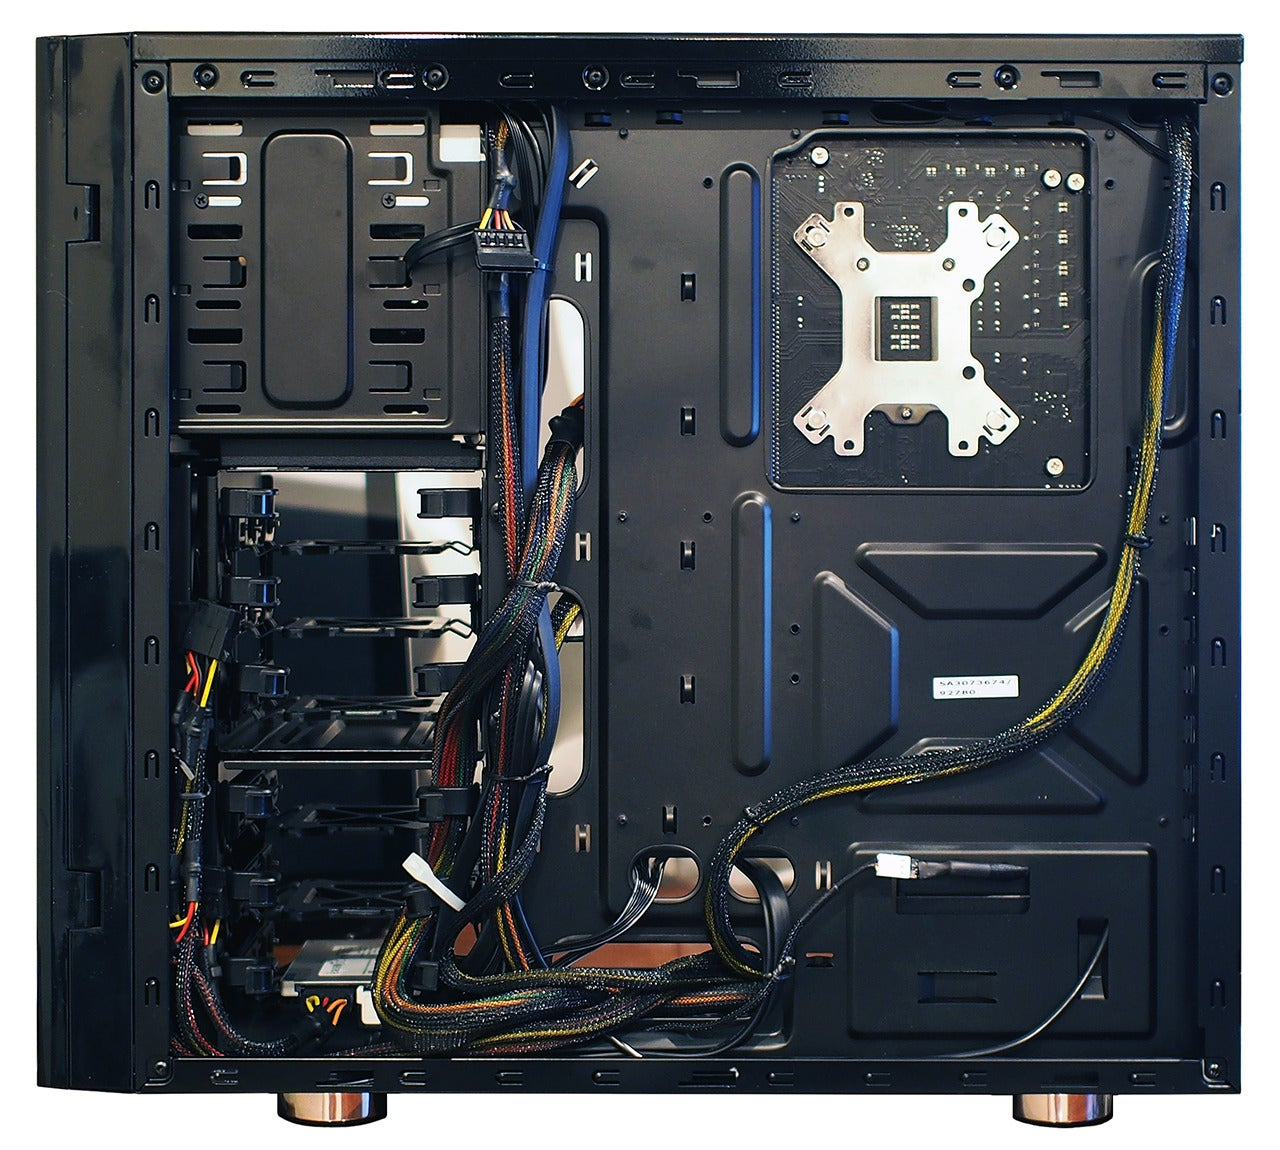 The ultimate guide to proper PC cable management | PCWorld